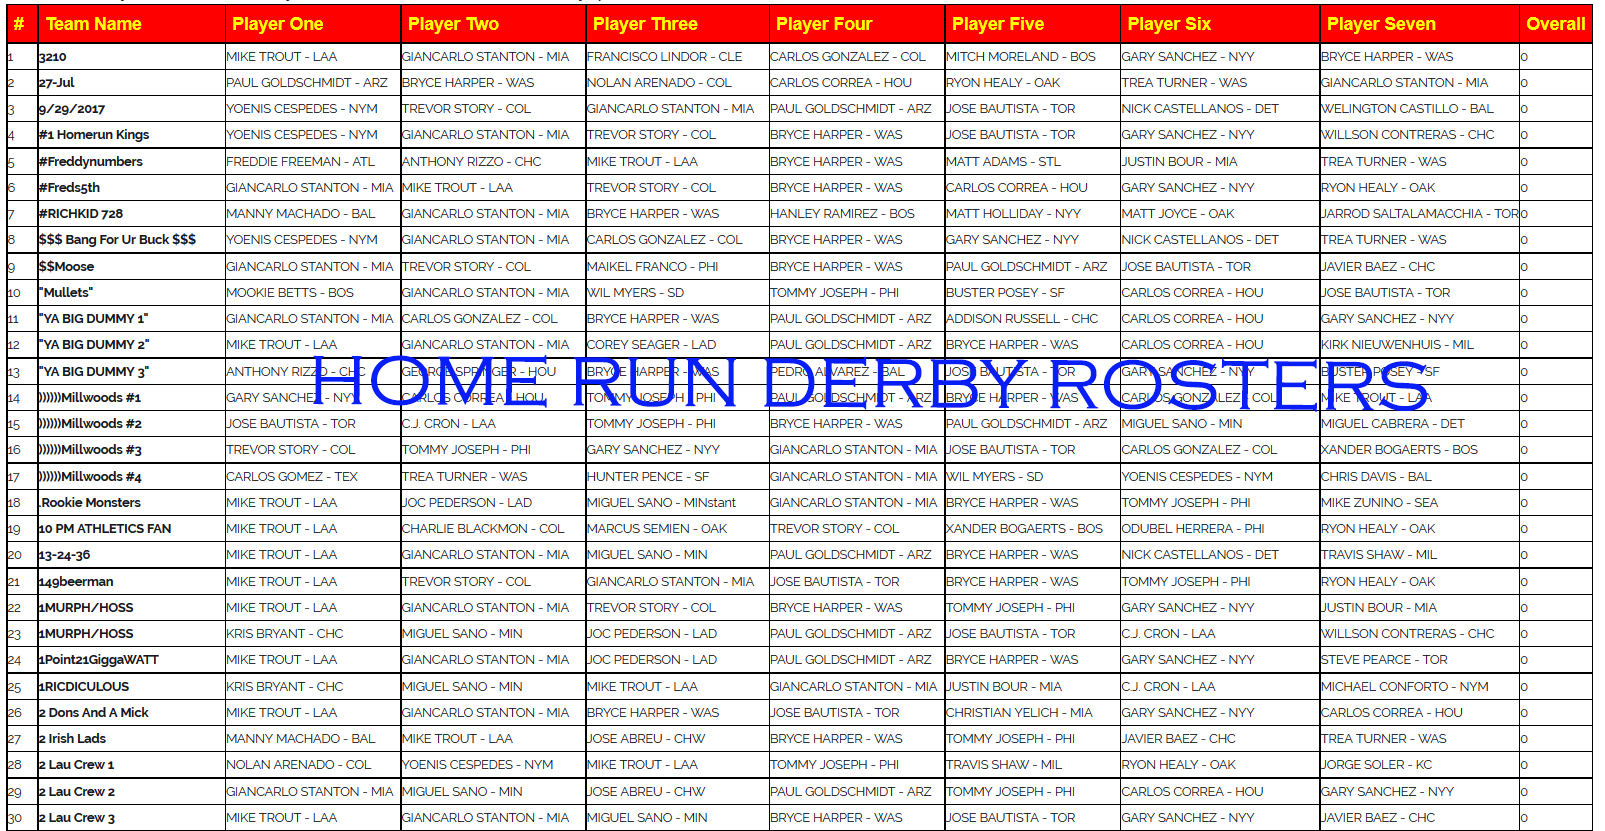 Home Run Derby Roster